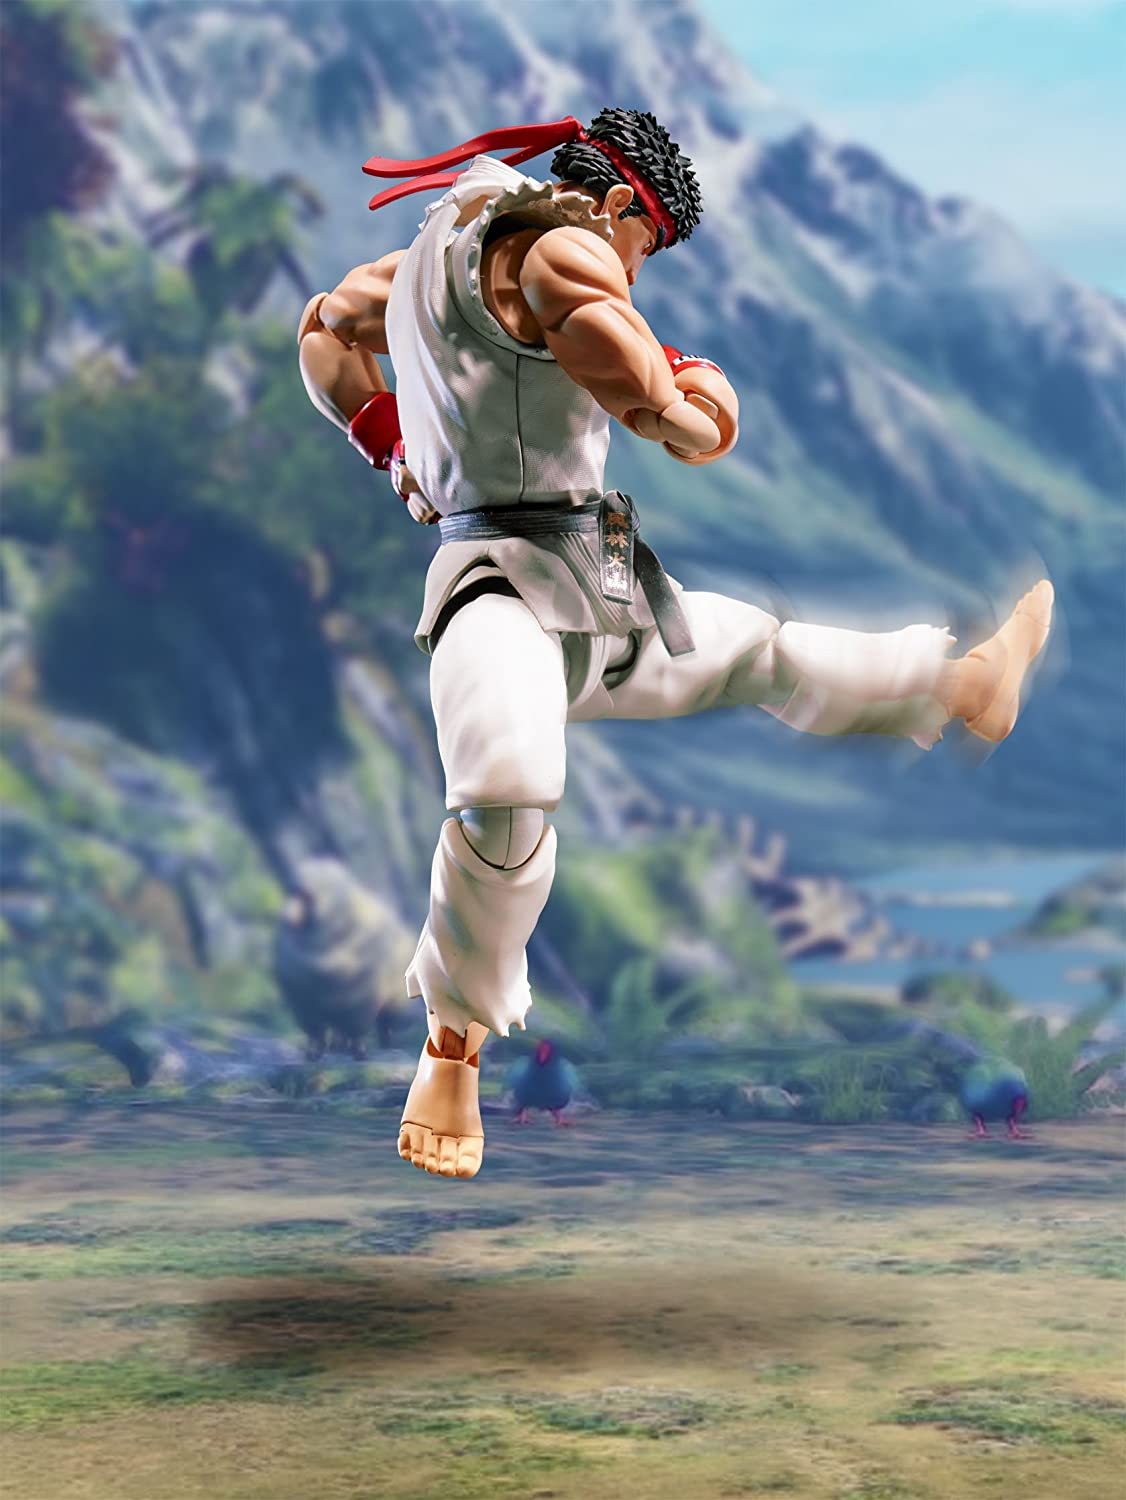 Bandai Tamashii Nations S.H Figuarts Ryu Street Fighter Action Figure 150mm BLYM8 BAN05193